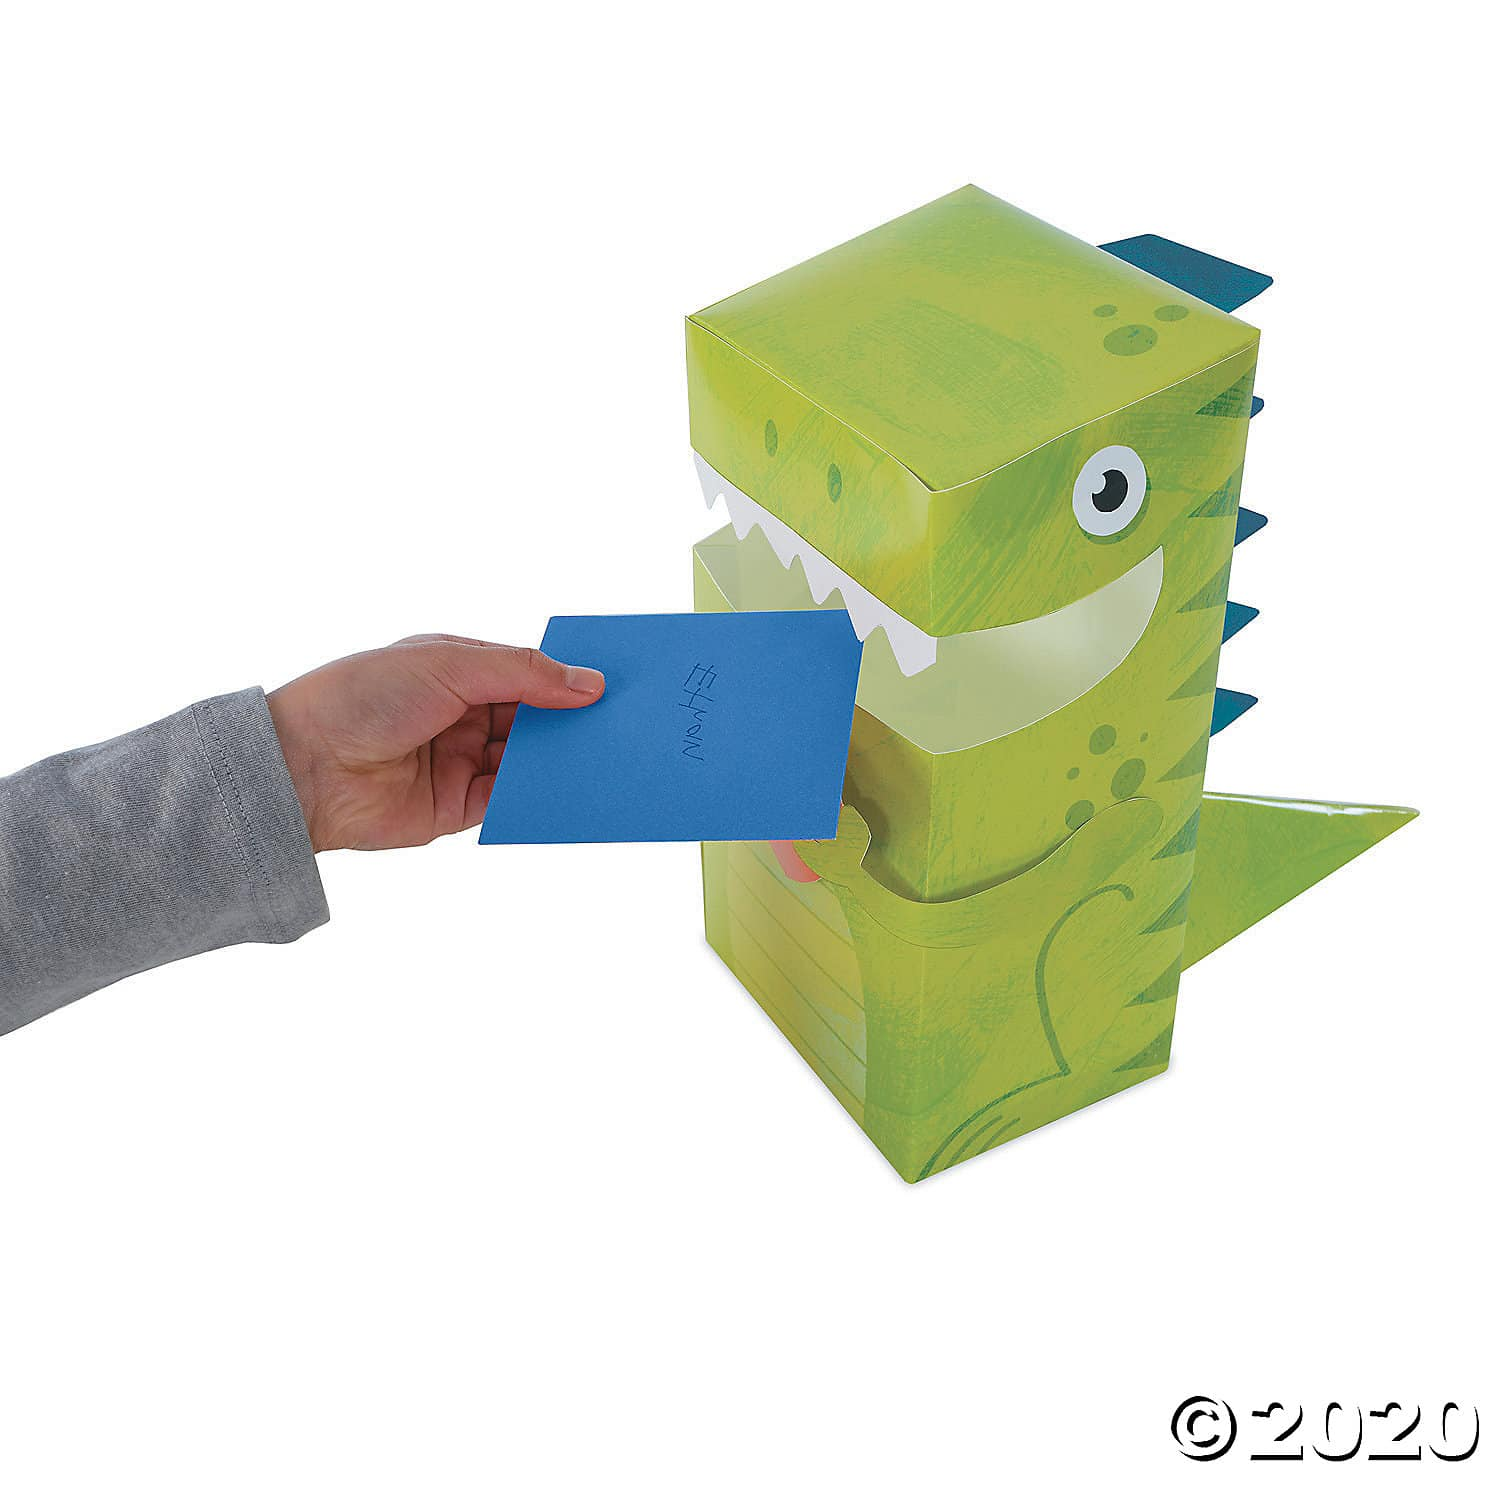 Dinosaur Valentine Mailbox. This ready-to-assemble dinosaur is perfect for collecting Valentines cards and candy at any classroom party. Simply fold the sturdy cardstock mailbox, seal it with adhesive strips and add sparkly foil accessories for your own personal touch! 2020 Valentine's Day Gift Guide from Jays Sweet N Sour Life Blog.